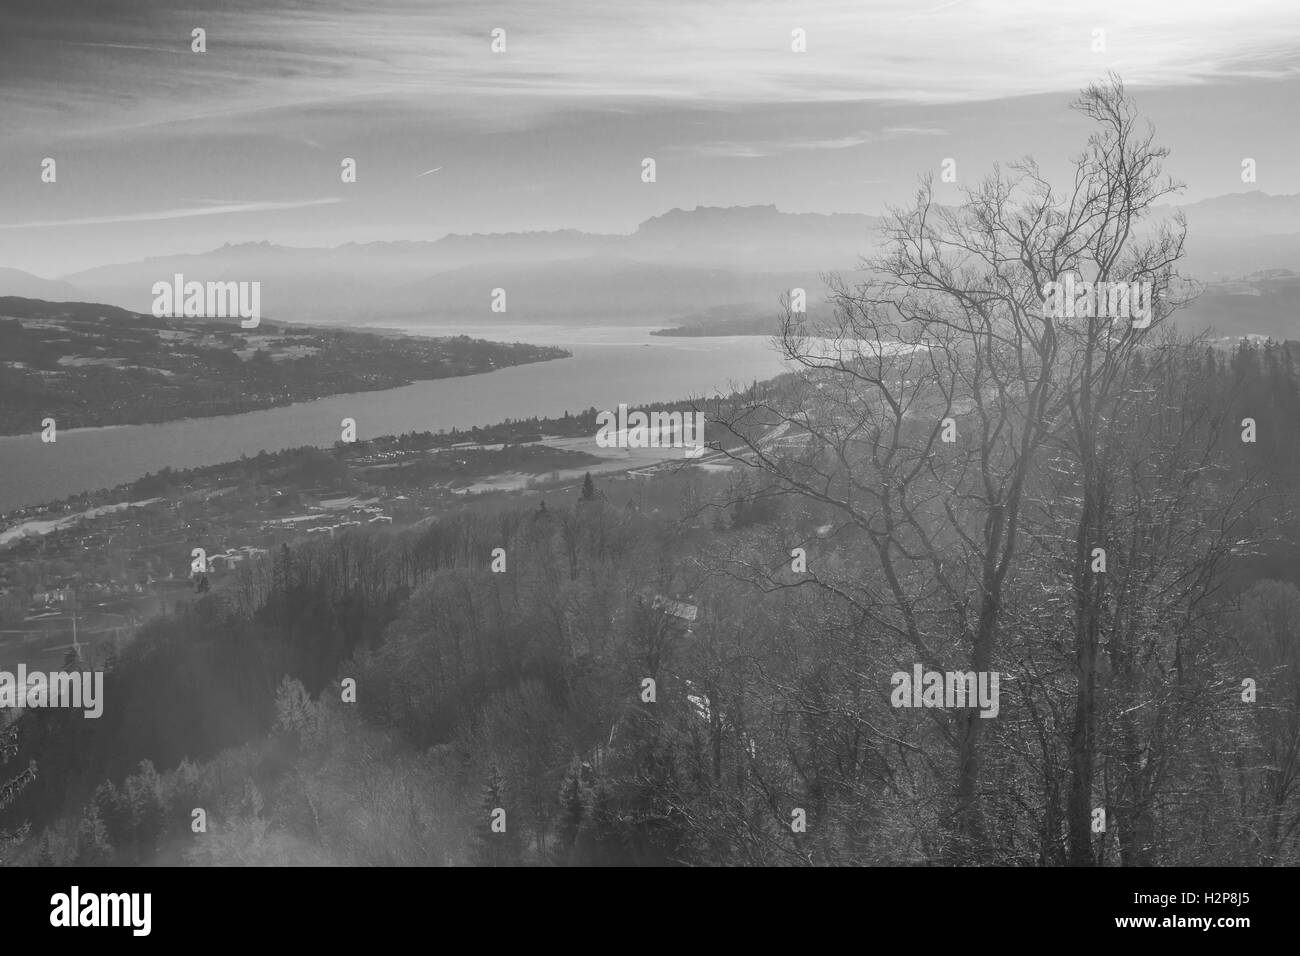 View of Lake Zurich from Uetliberg Mountain. Switzerland - Stock Image